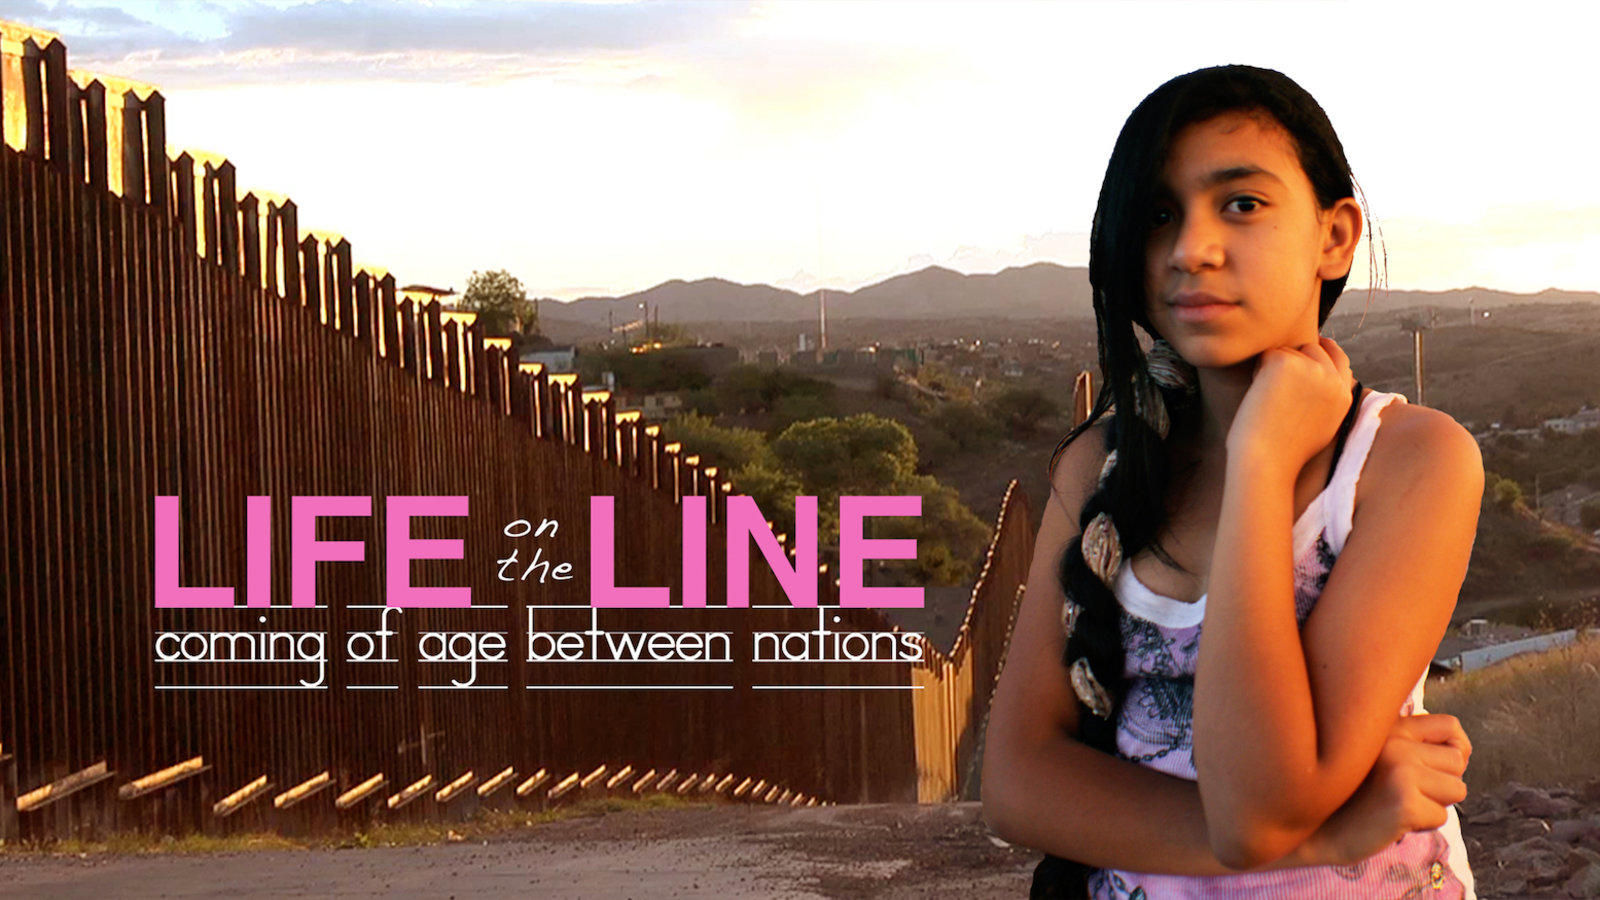 Life on the Line - Coming of Age Between Nations